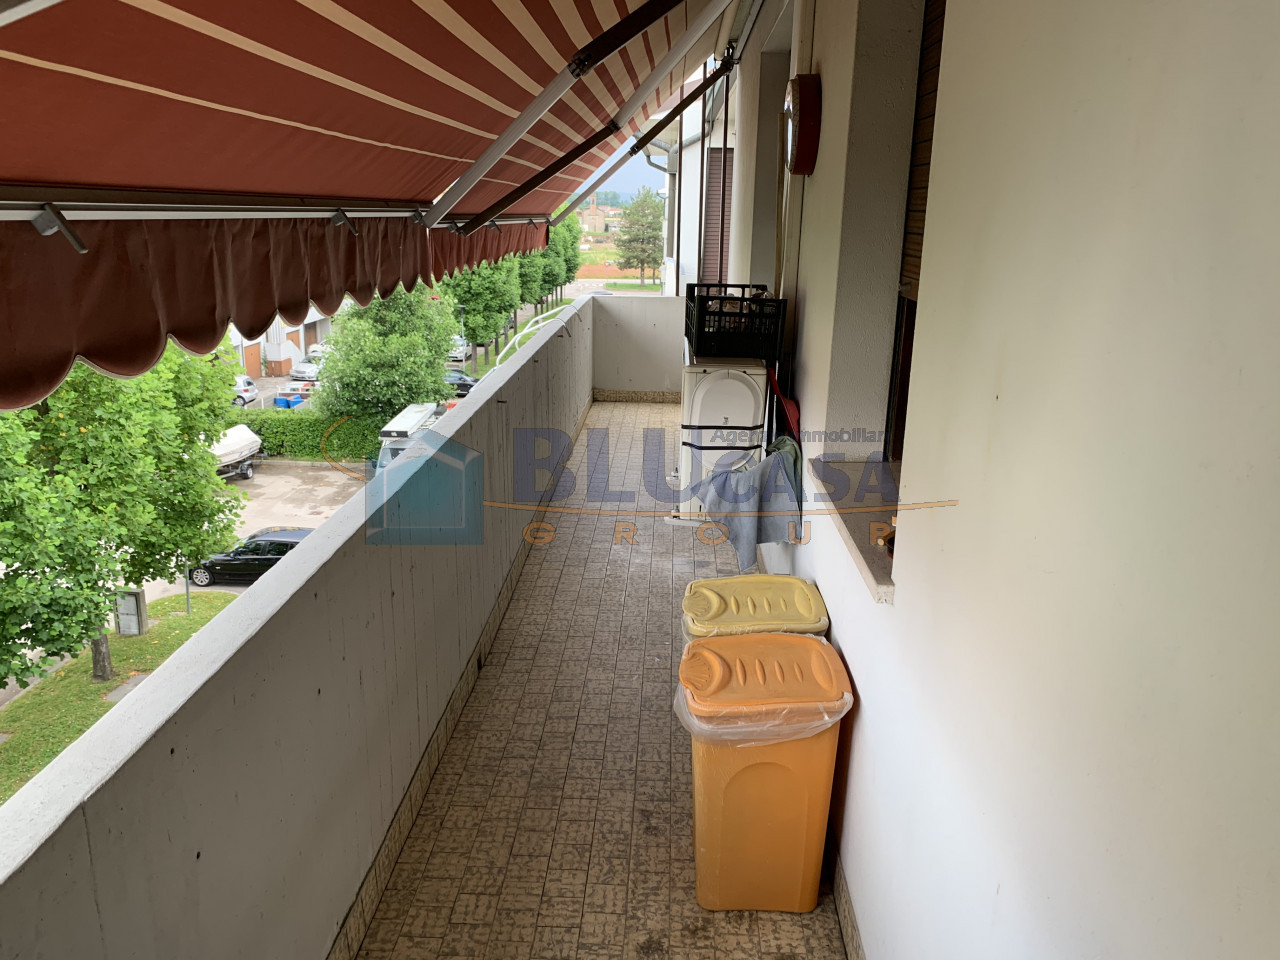 J02 Appartamento 3 camere a Mandriola https://images.gestionaleimmobiliare.it/foto/annunci/210609/2623100/1280x1280/016__anyconv_com__img_3589.jpg